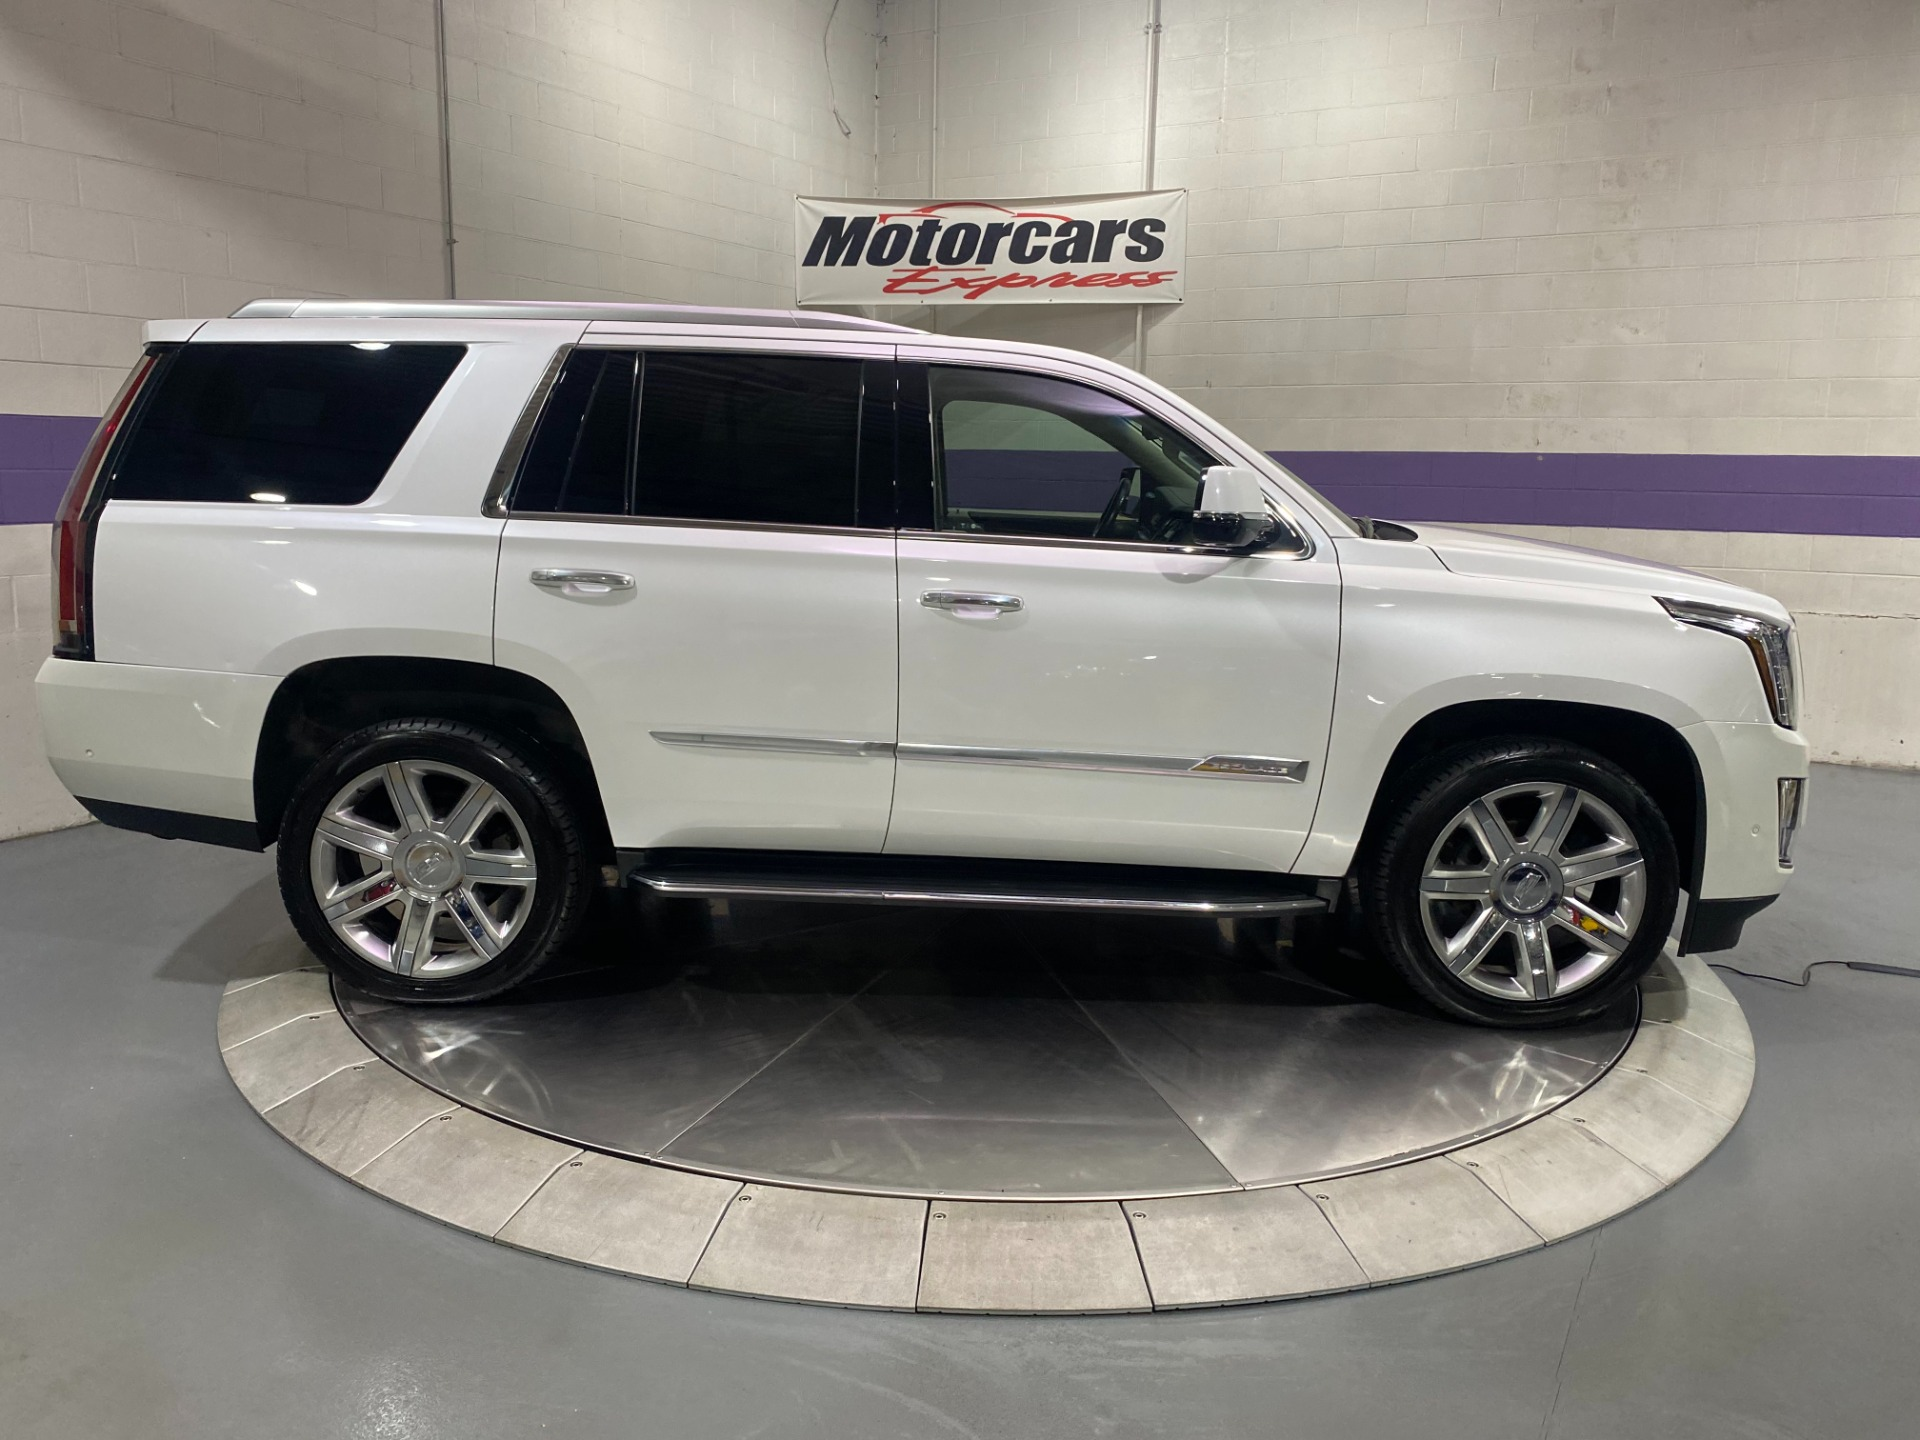 Used-2017-Cadillac-Escalade-Luxury-4x4